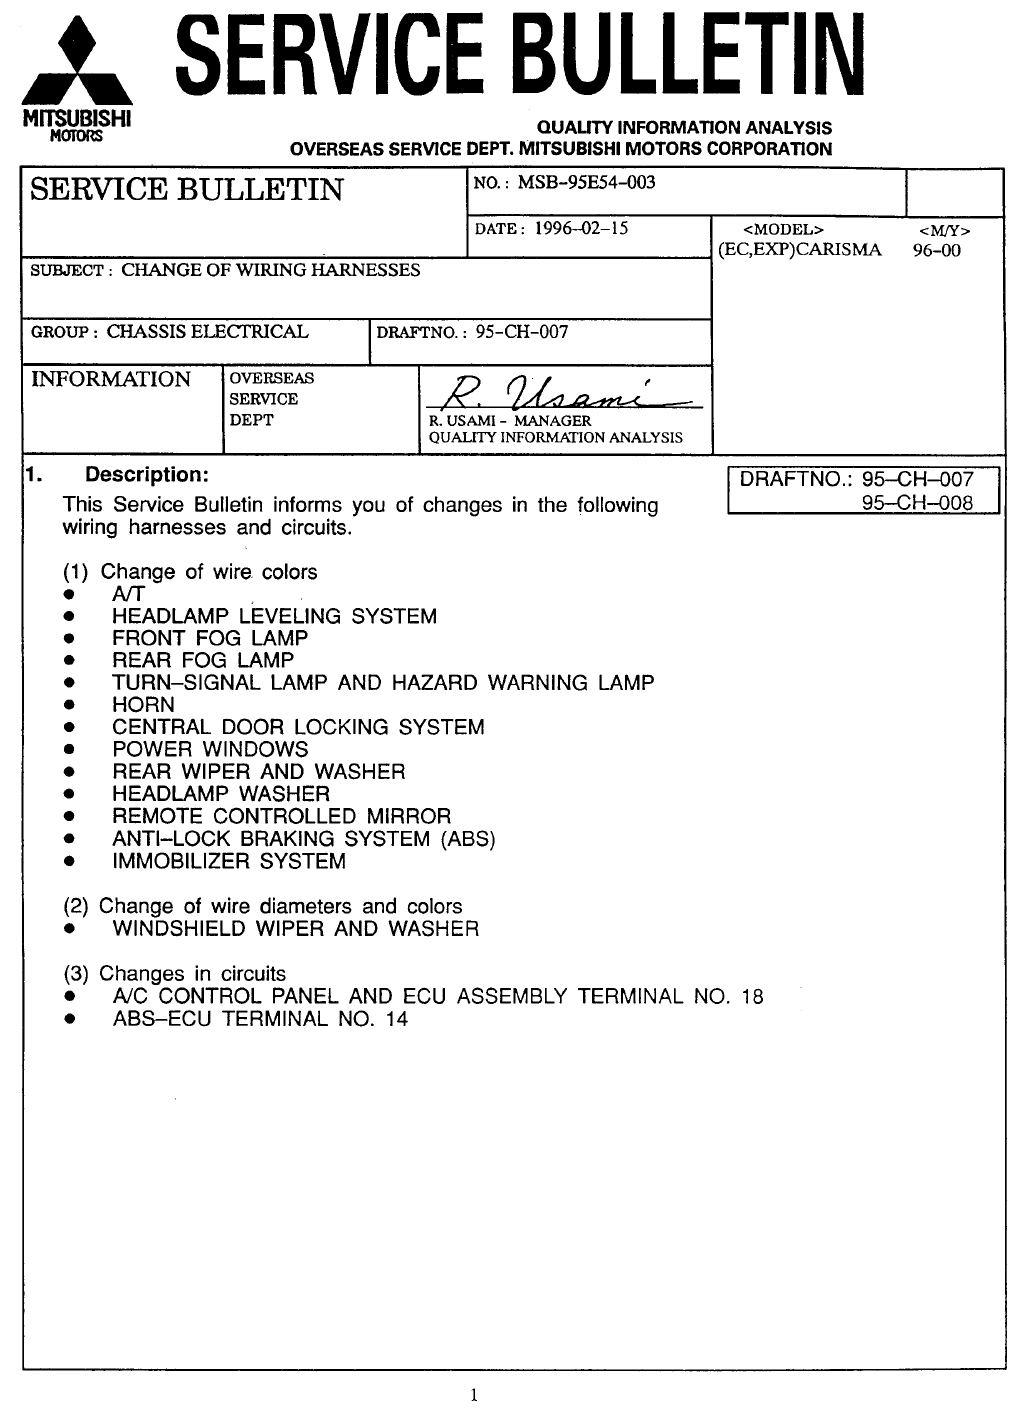 Mitsubishi Carisma 1996 Misc Document Wiring Diagram Pdf See Our Other Manuals